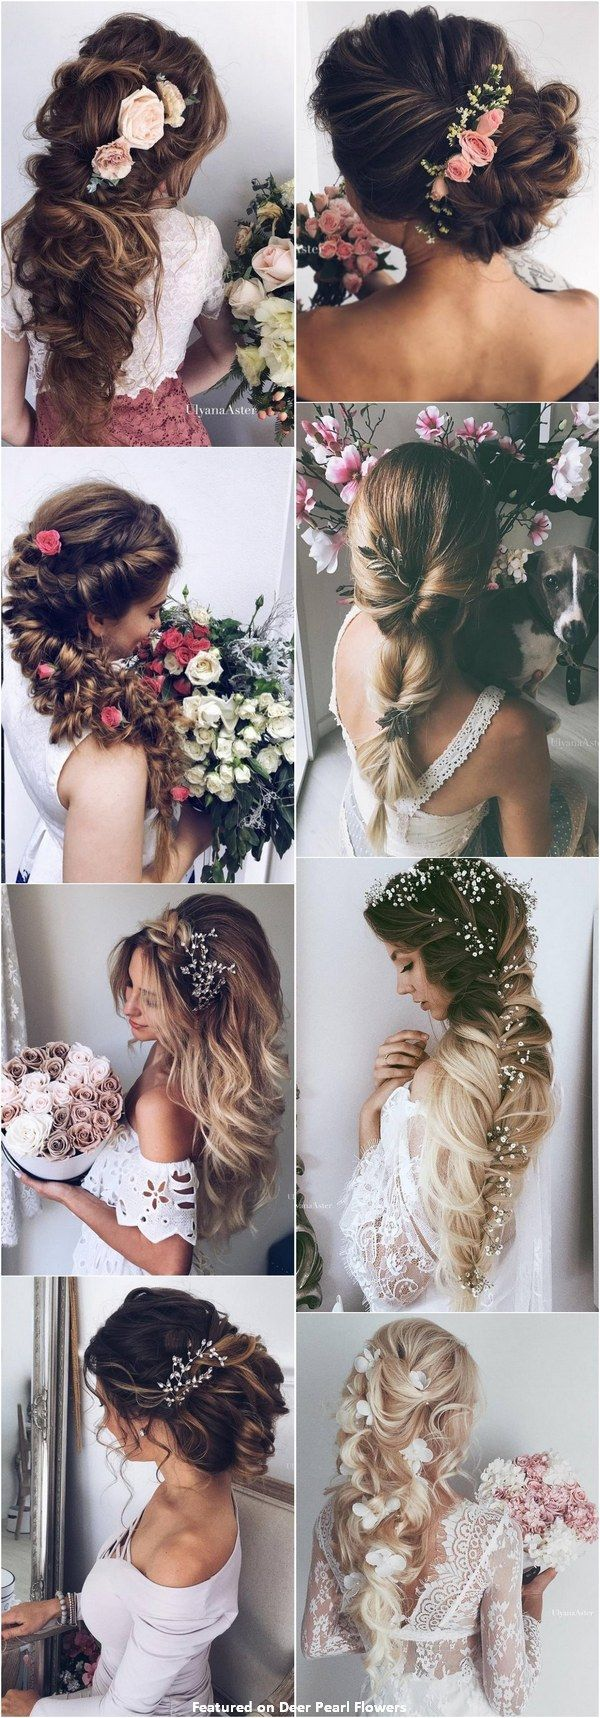 65 New Romantic Long Bridal Wedding Hairstyles to Try / Ulyana Aster http://www.ulyanaaster.com